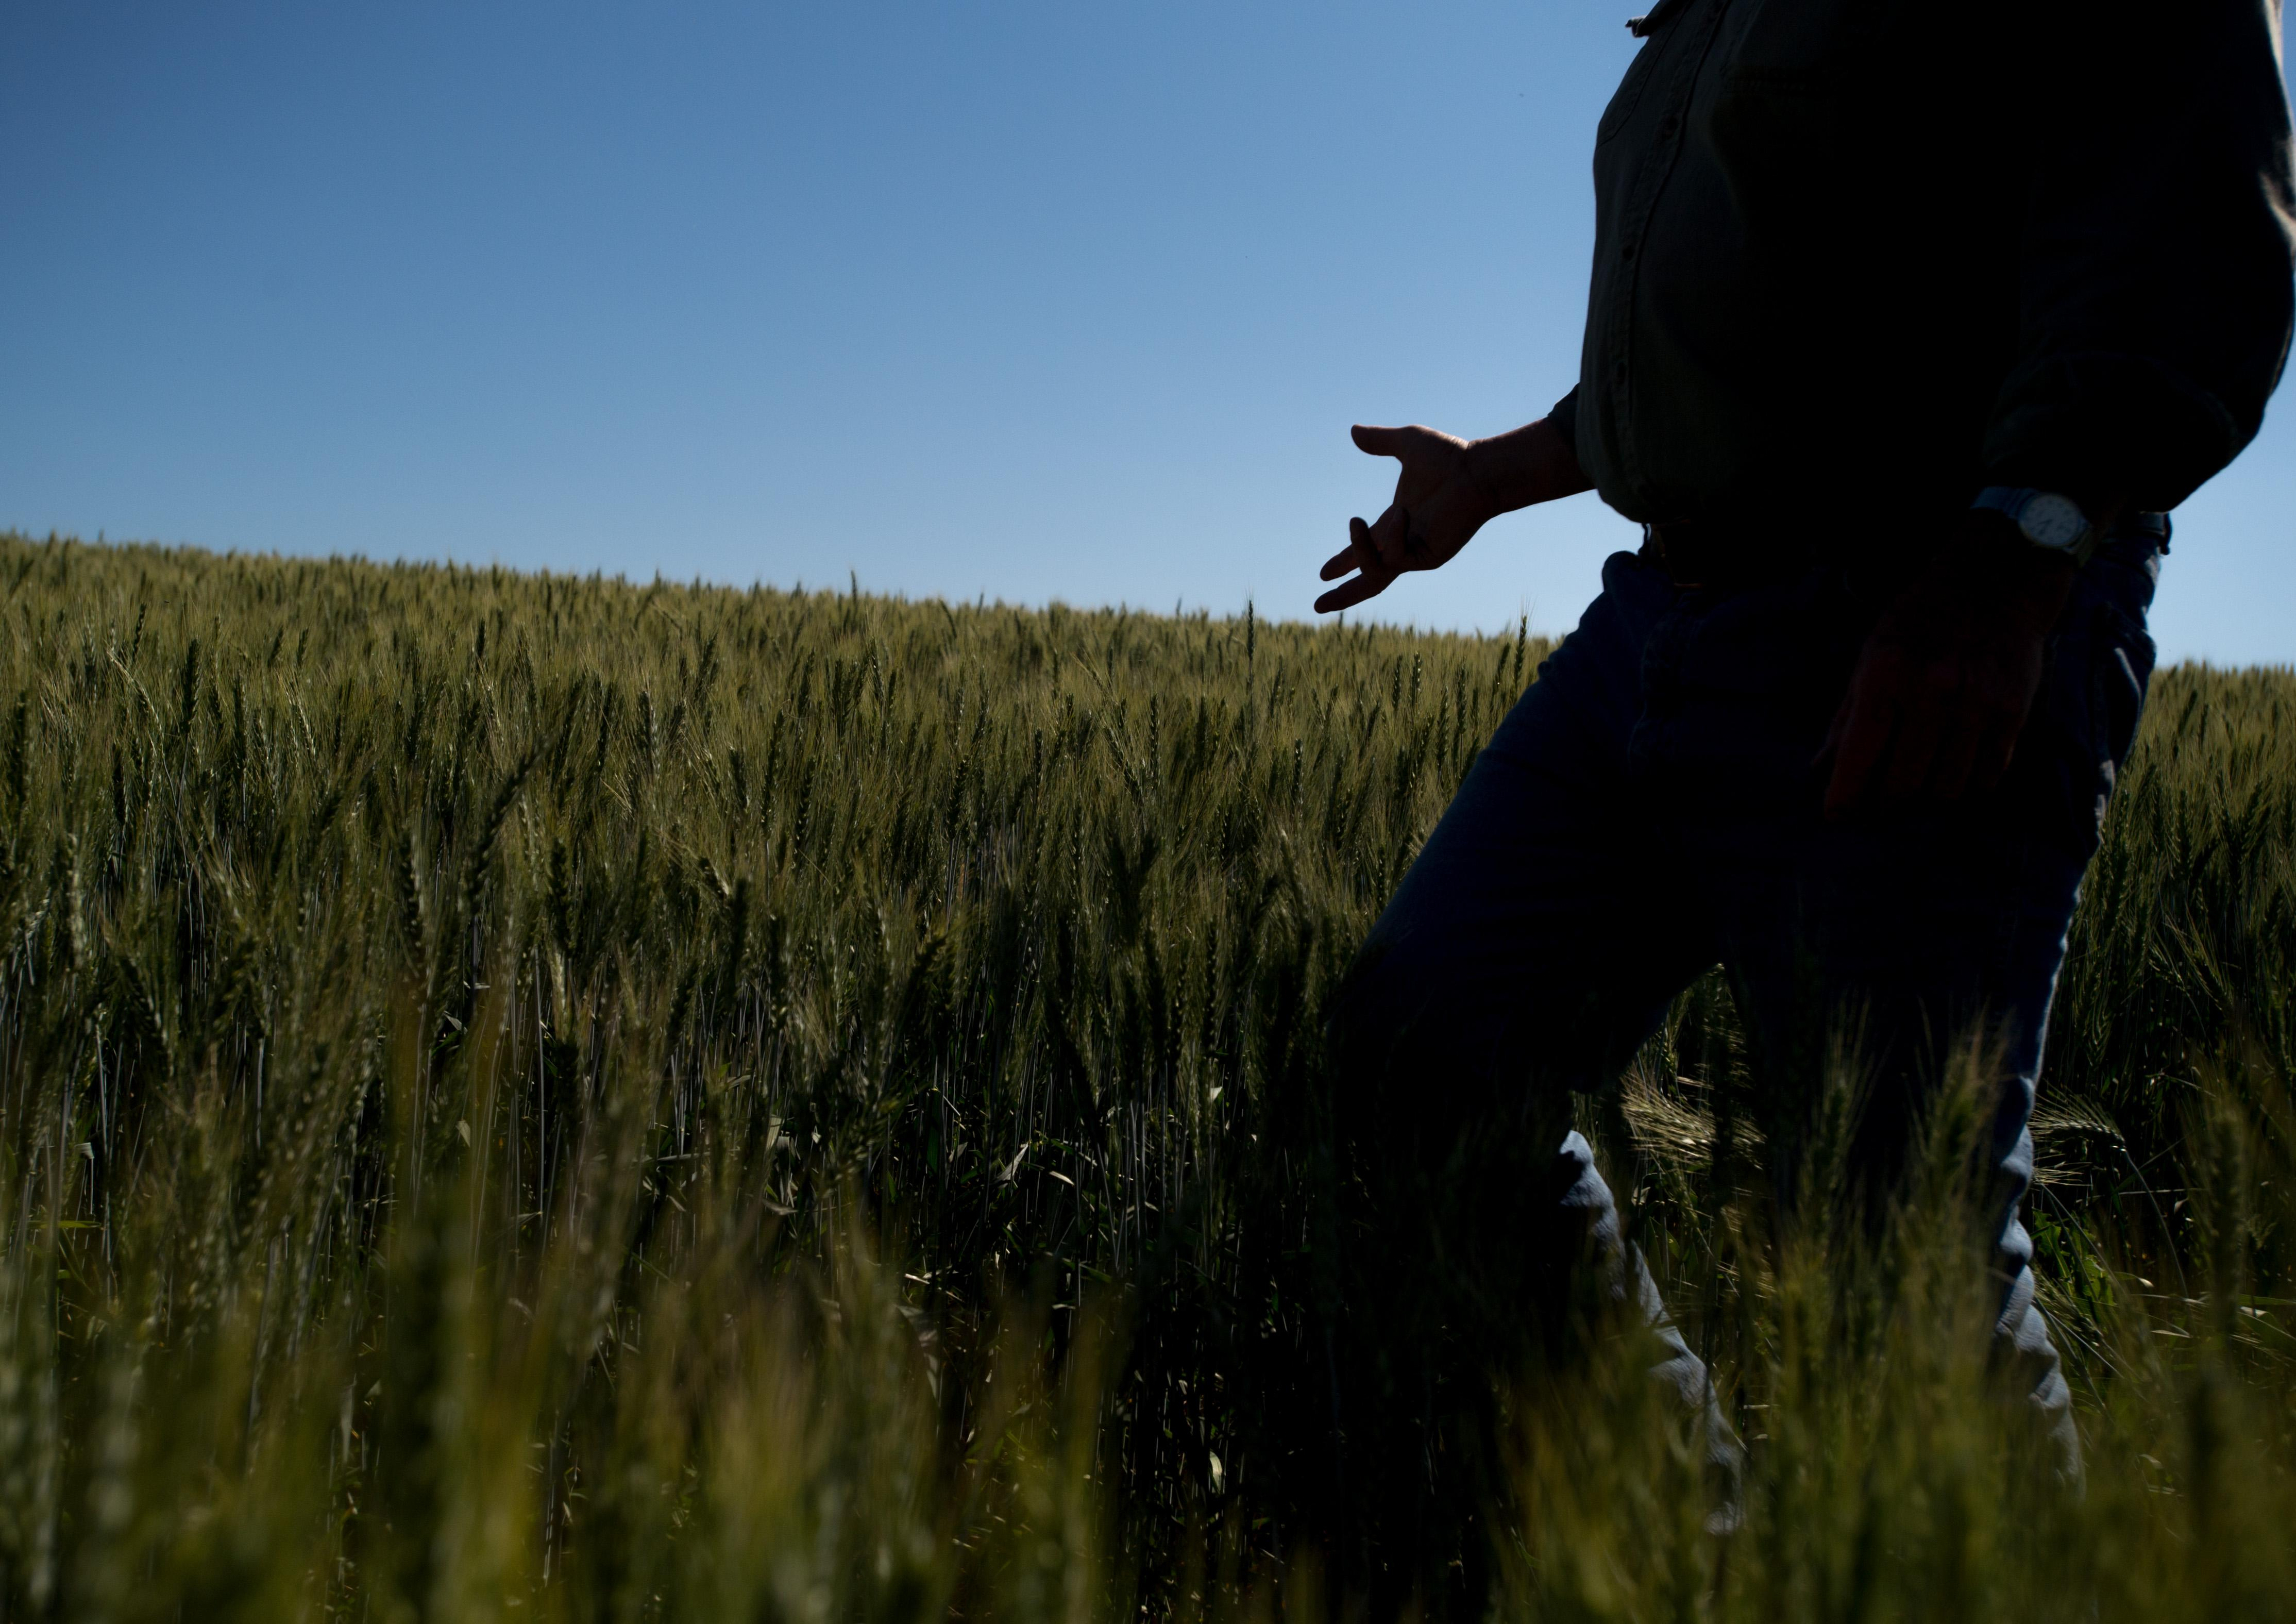 Bill Myers gives a tour of one of his wheat fields on Wednesday, July 5, 2017, in Colfax, Wash. (Tyler Tjomsland / The Spokesman-Review)